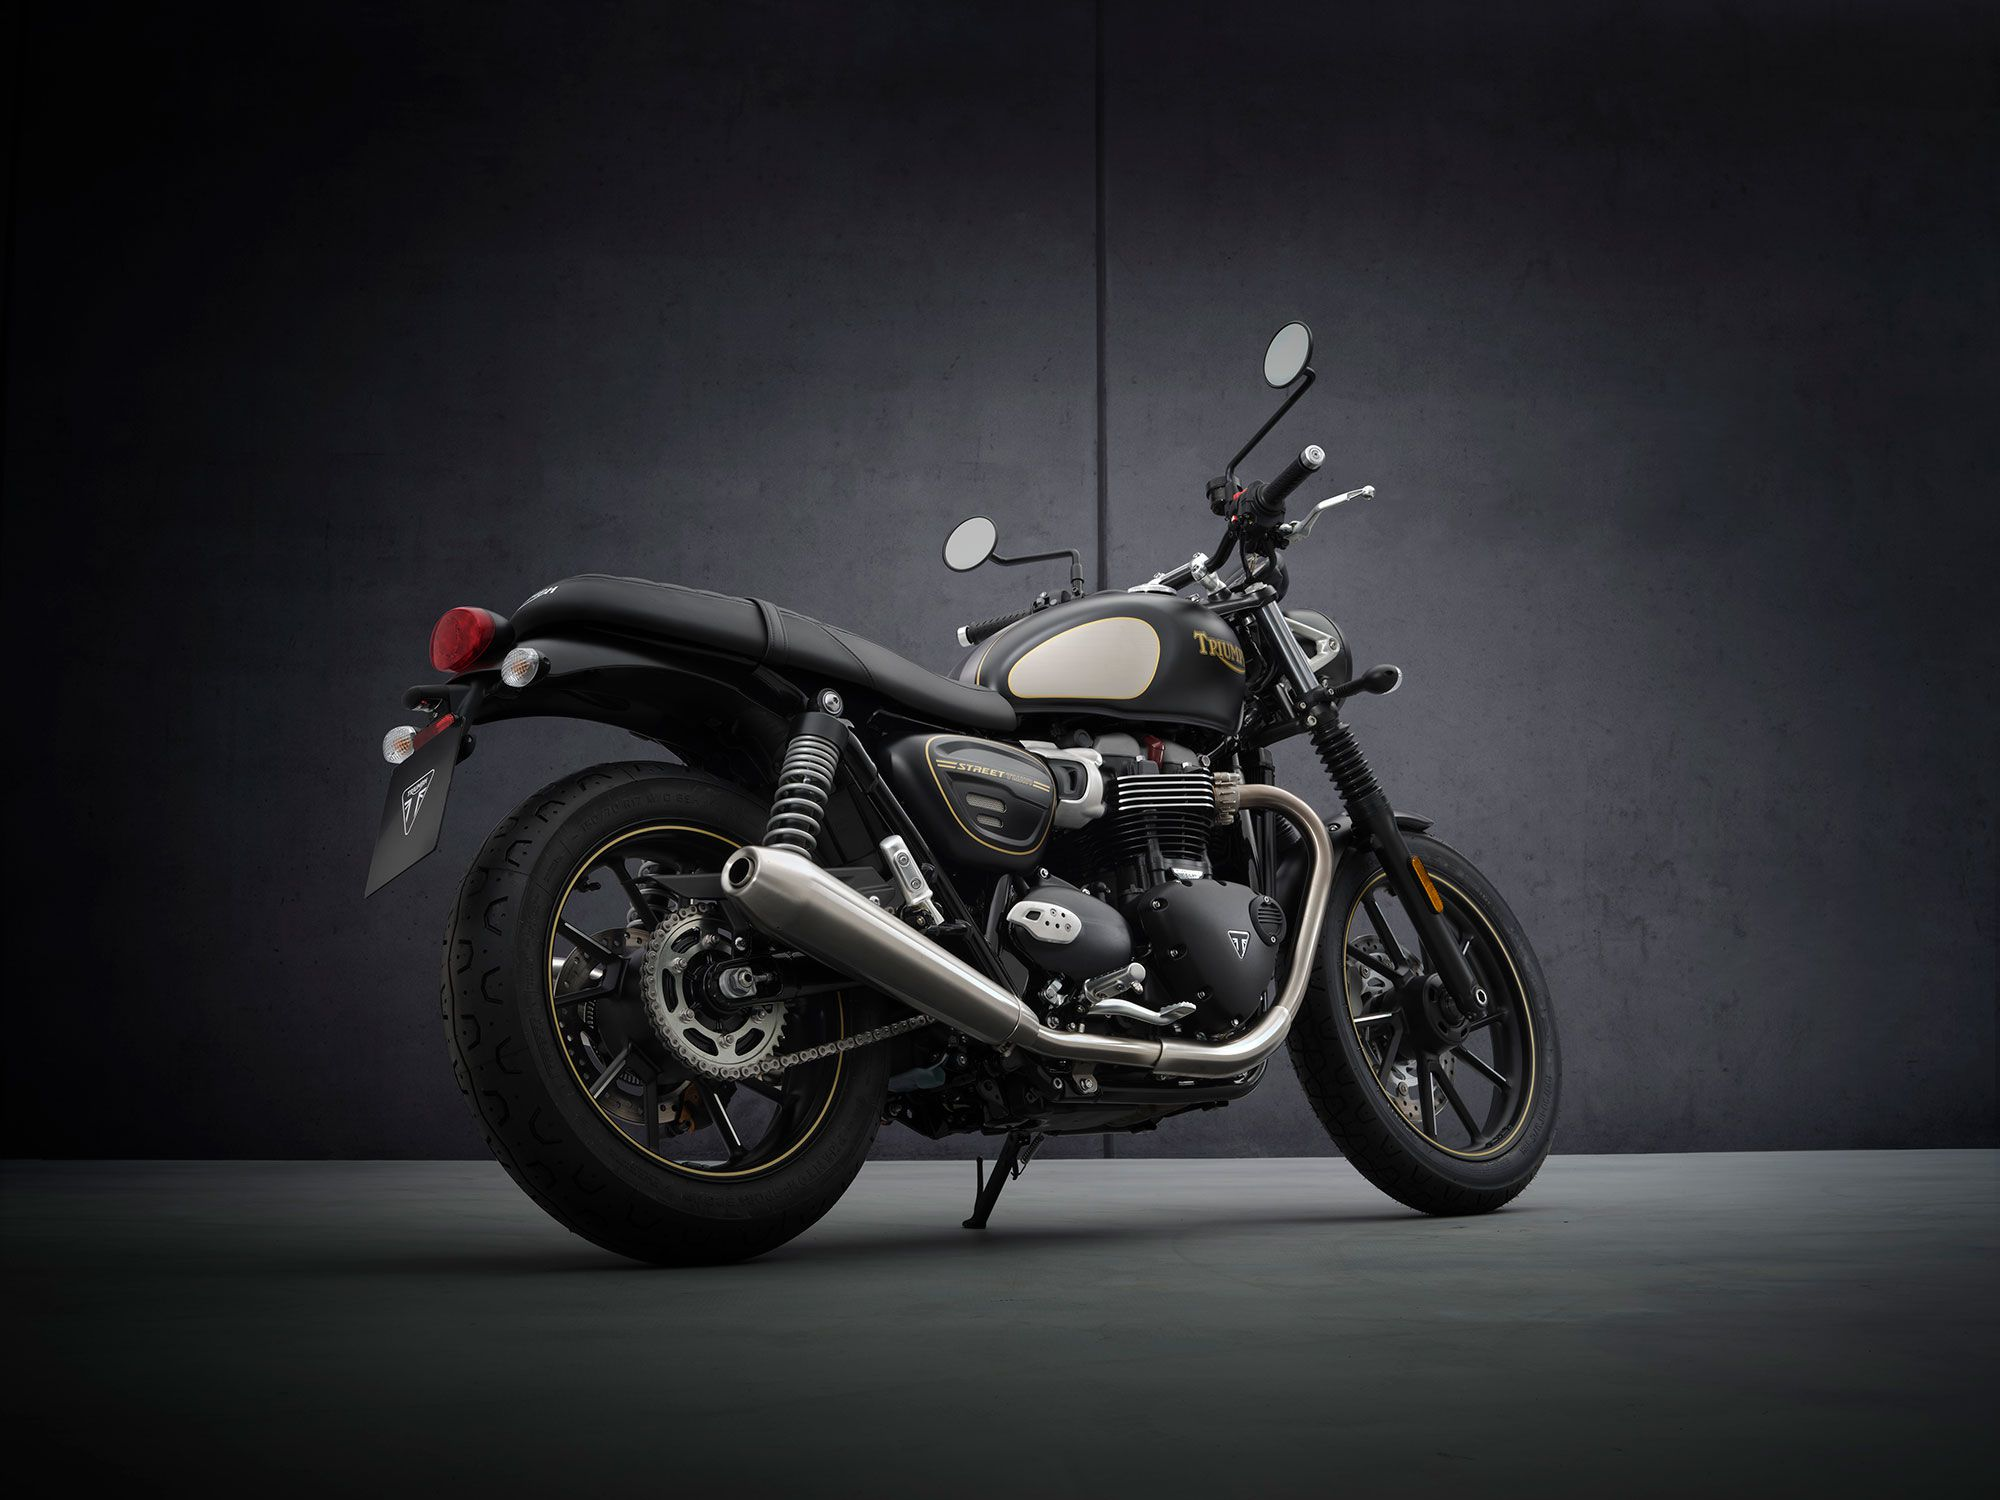 The Street Twin Gold Line limited edition features hand-painted pinstriping.